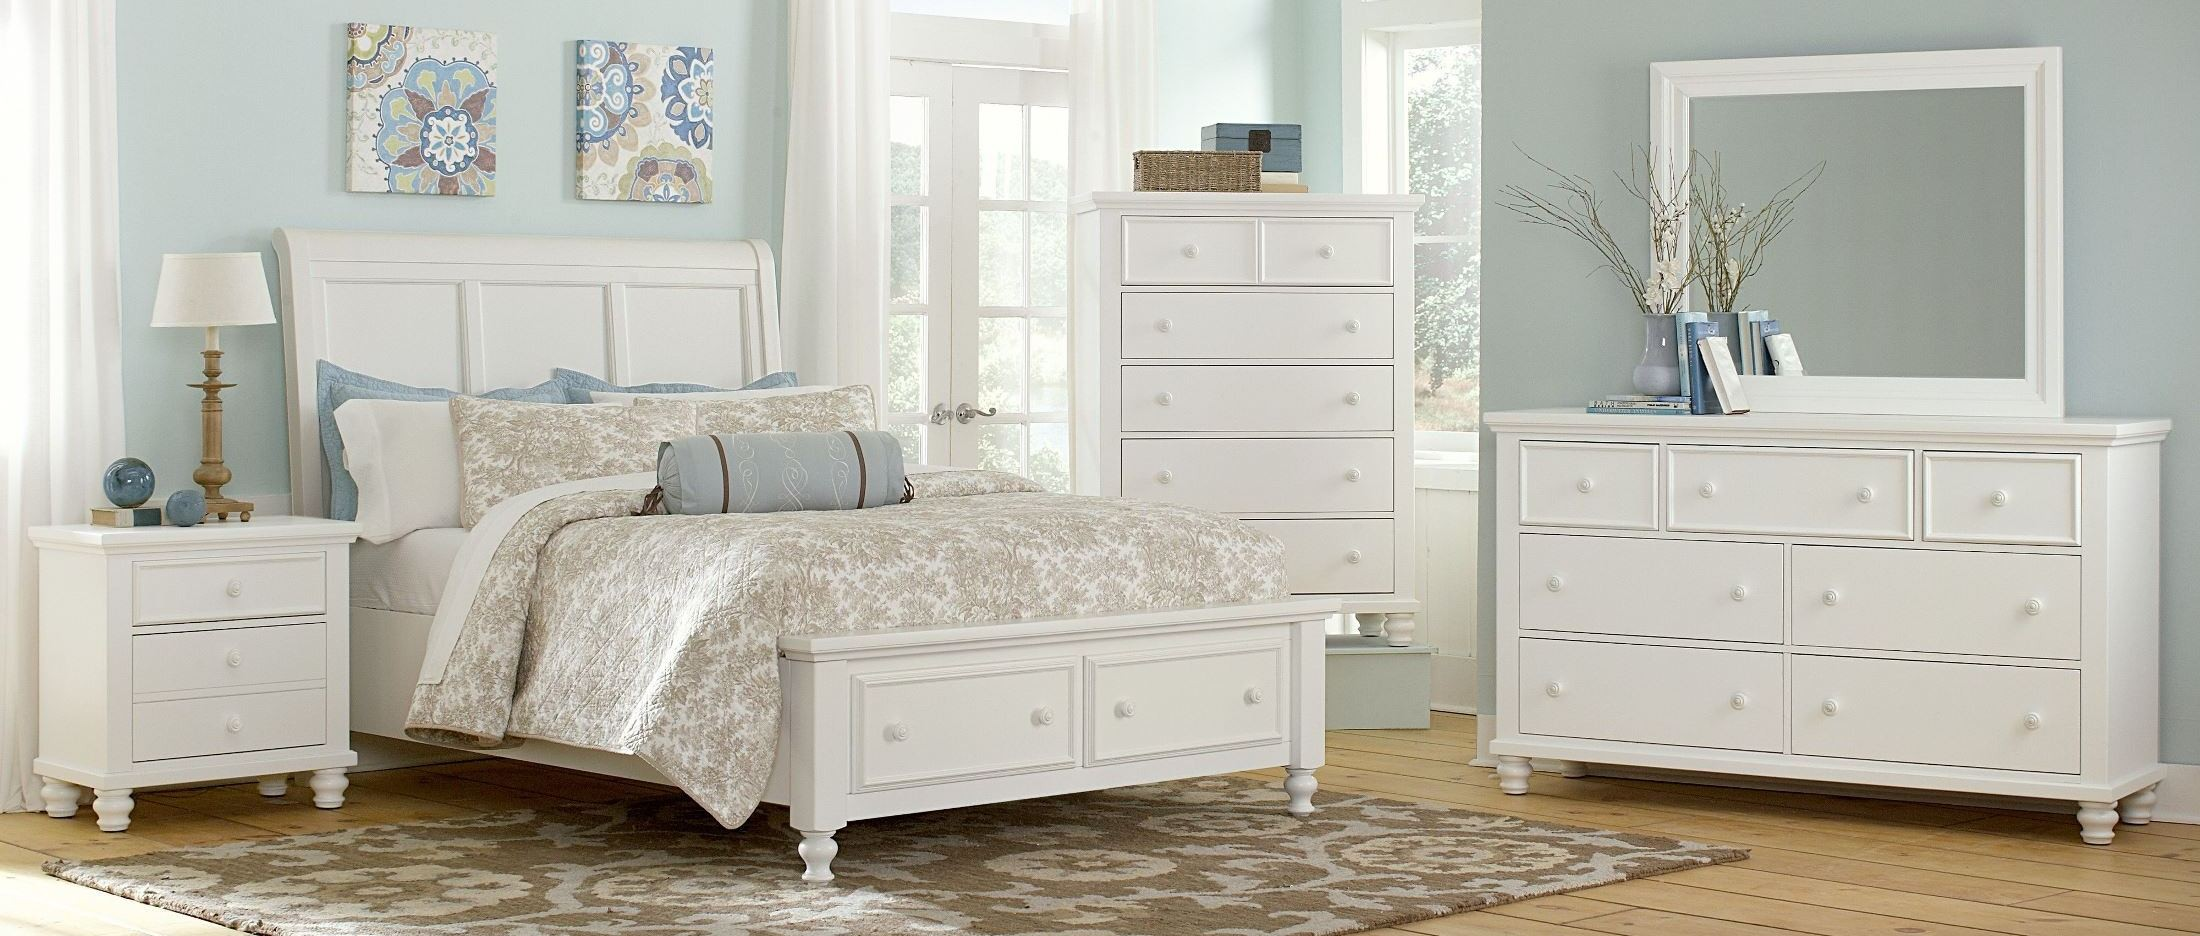 Ellington white sleigh storage bedroom set from vaughan for White bedroom set with storage